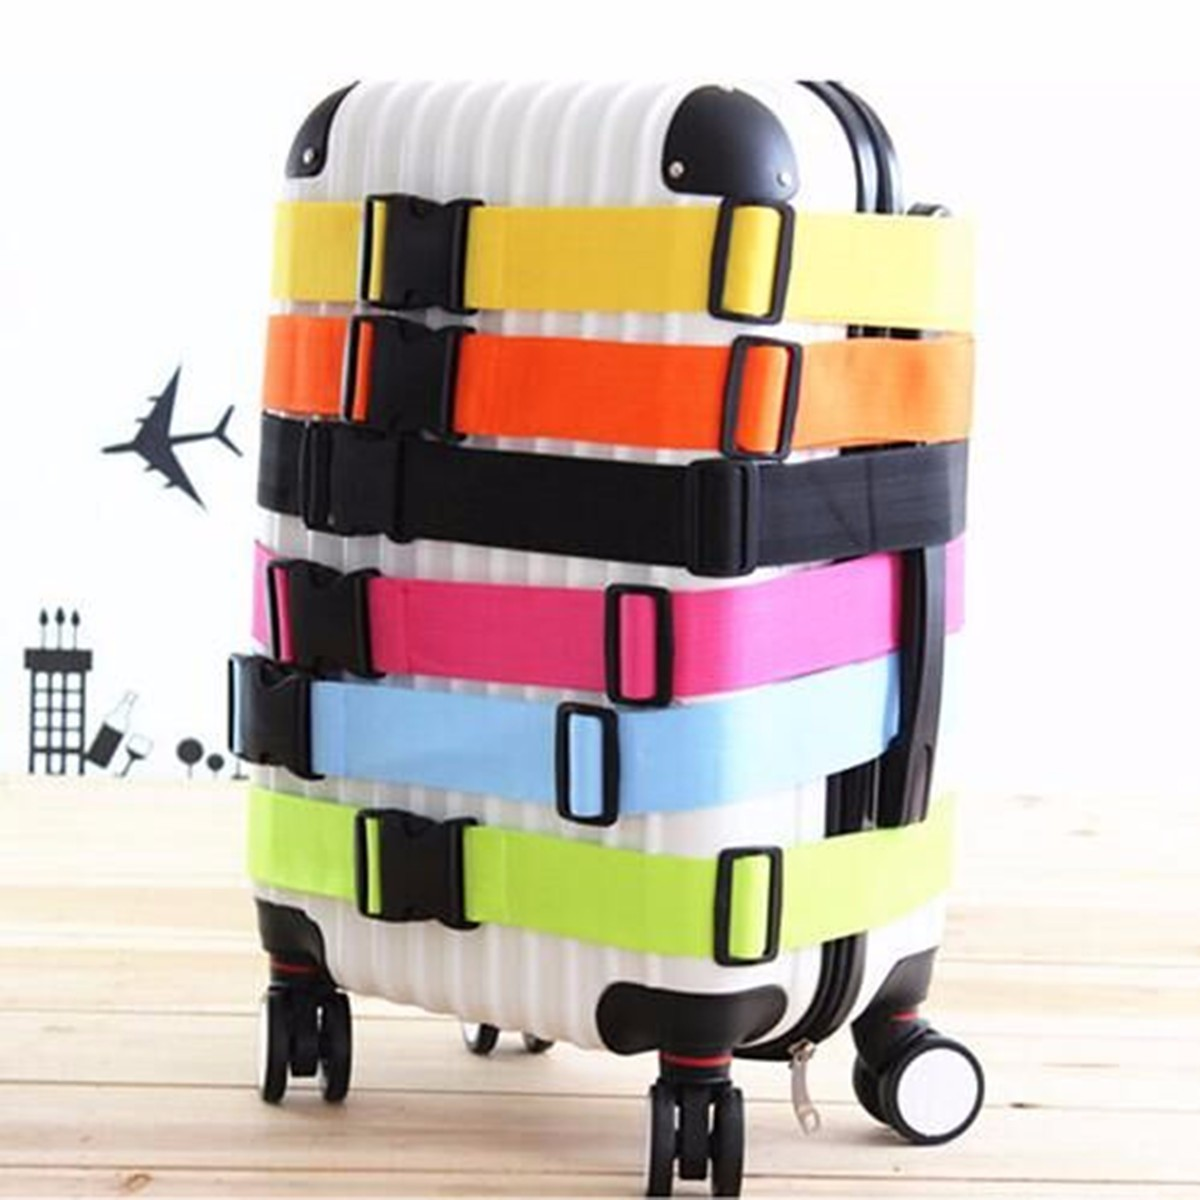 IPRee™ 185x5CM Adjustable Suitcase Luggage Strap Travel Baggage Tie Down Belt Lock